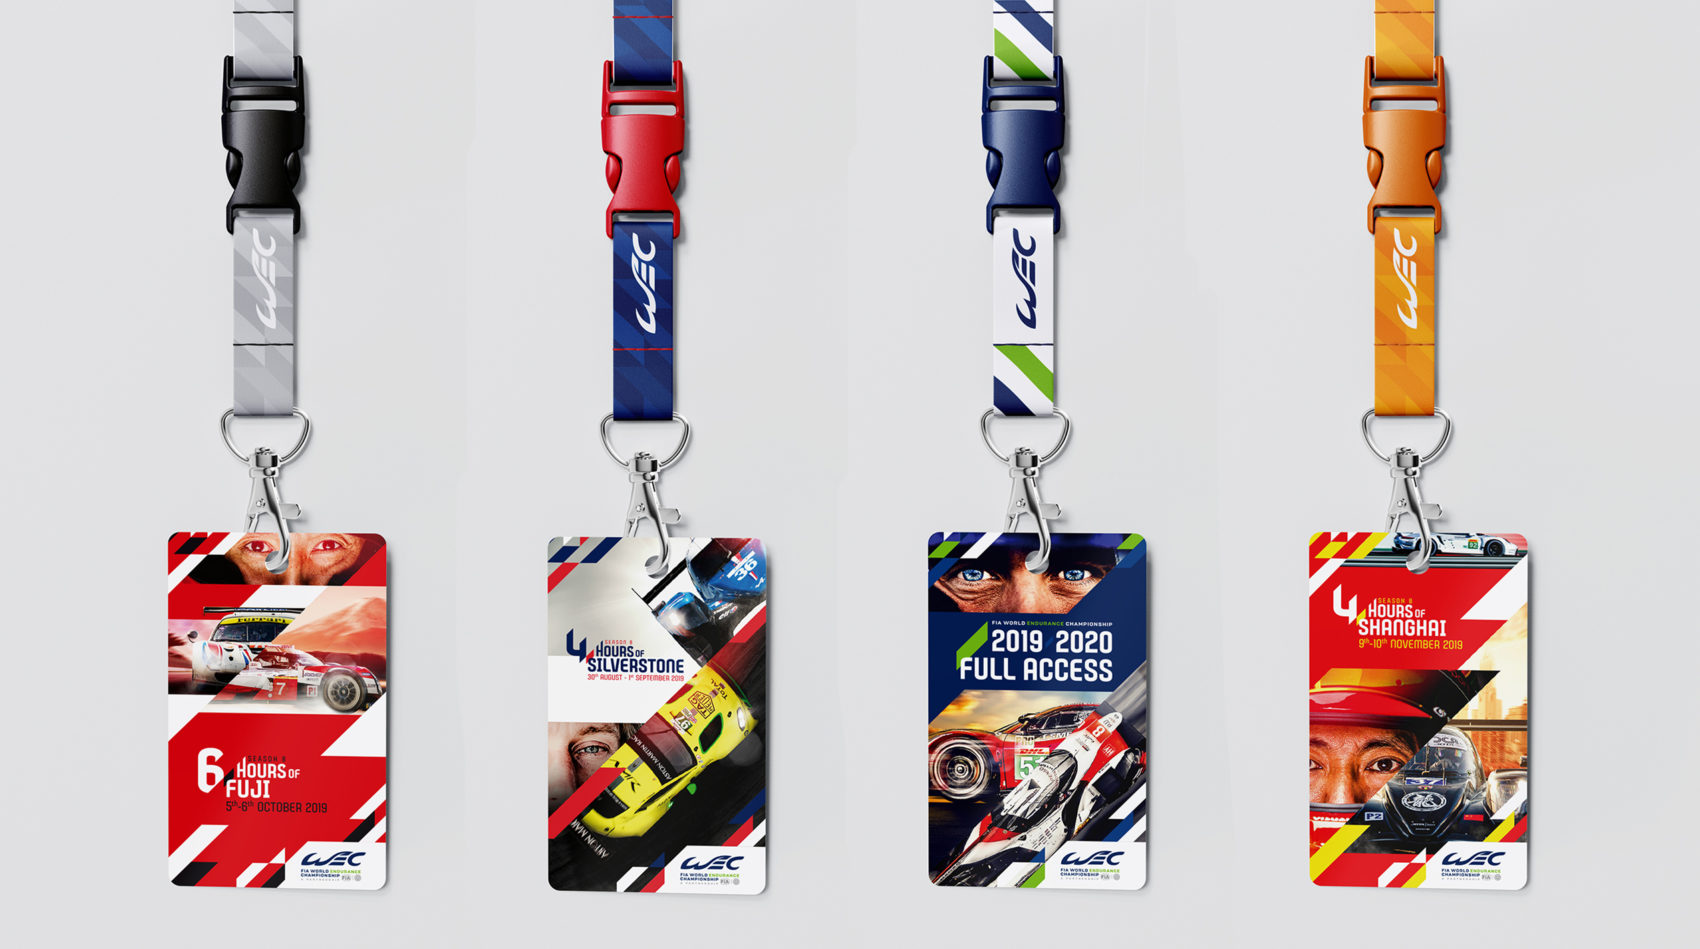 Projet_Project_WEC_FIA_world_endurance_championship_habillage_branding_2